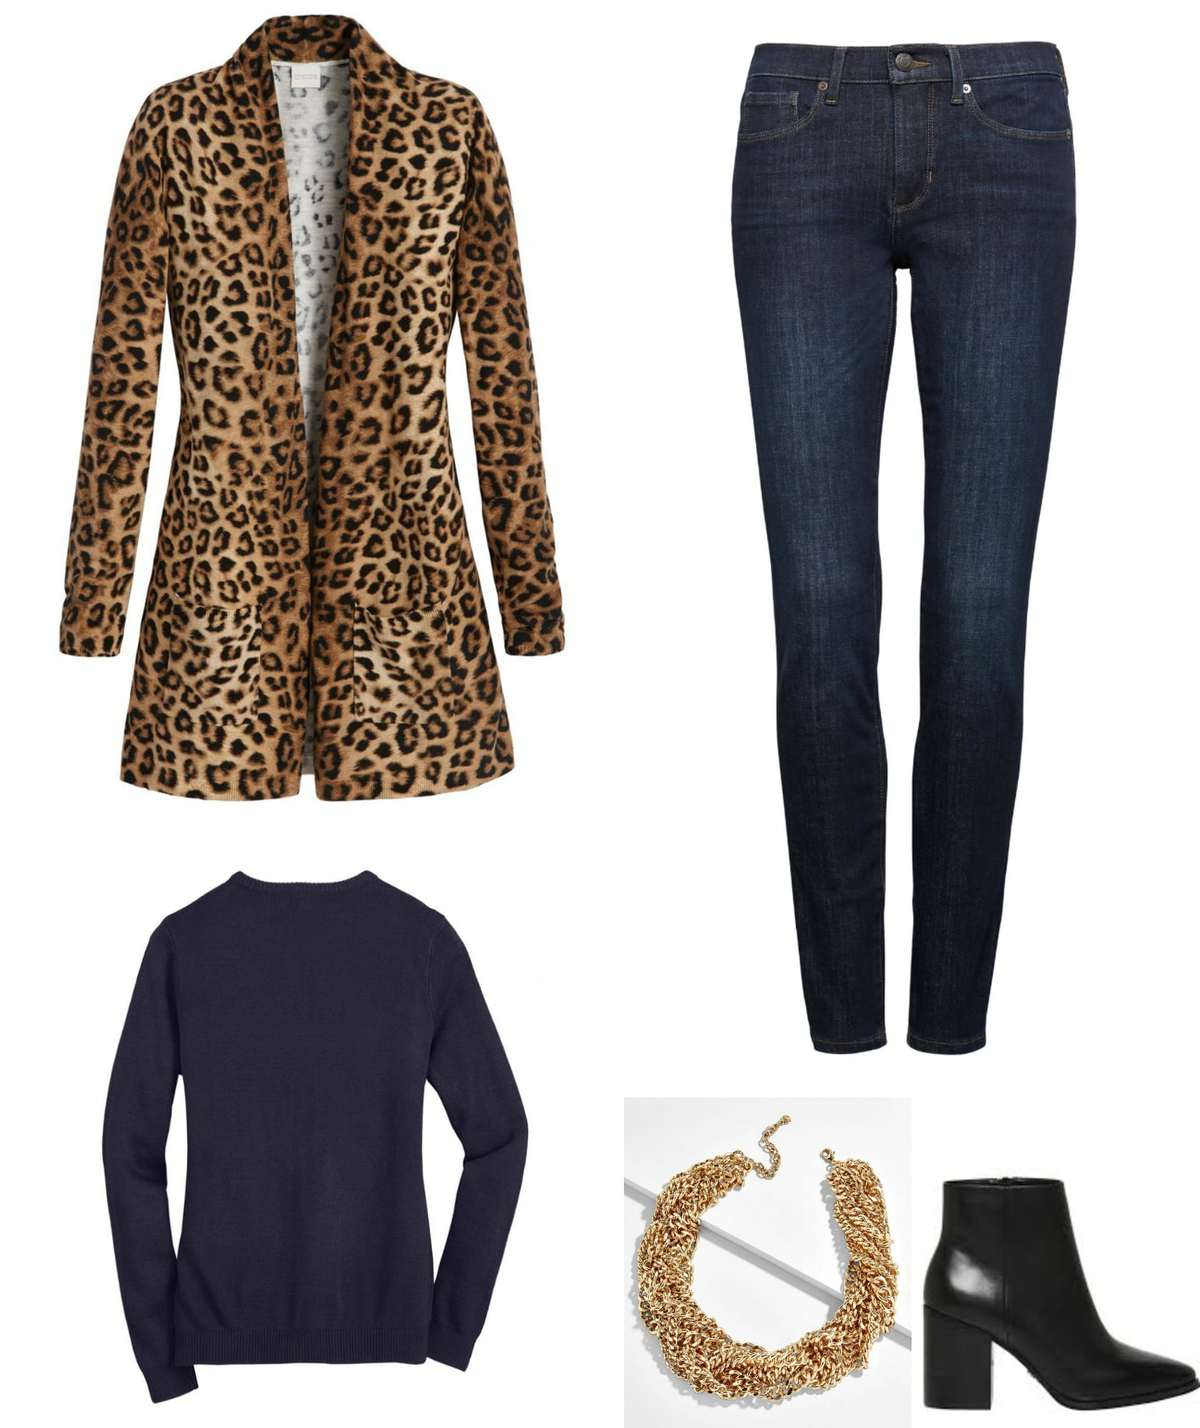 leopard navy and black